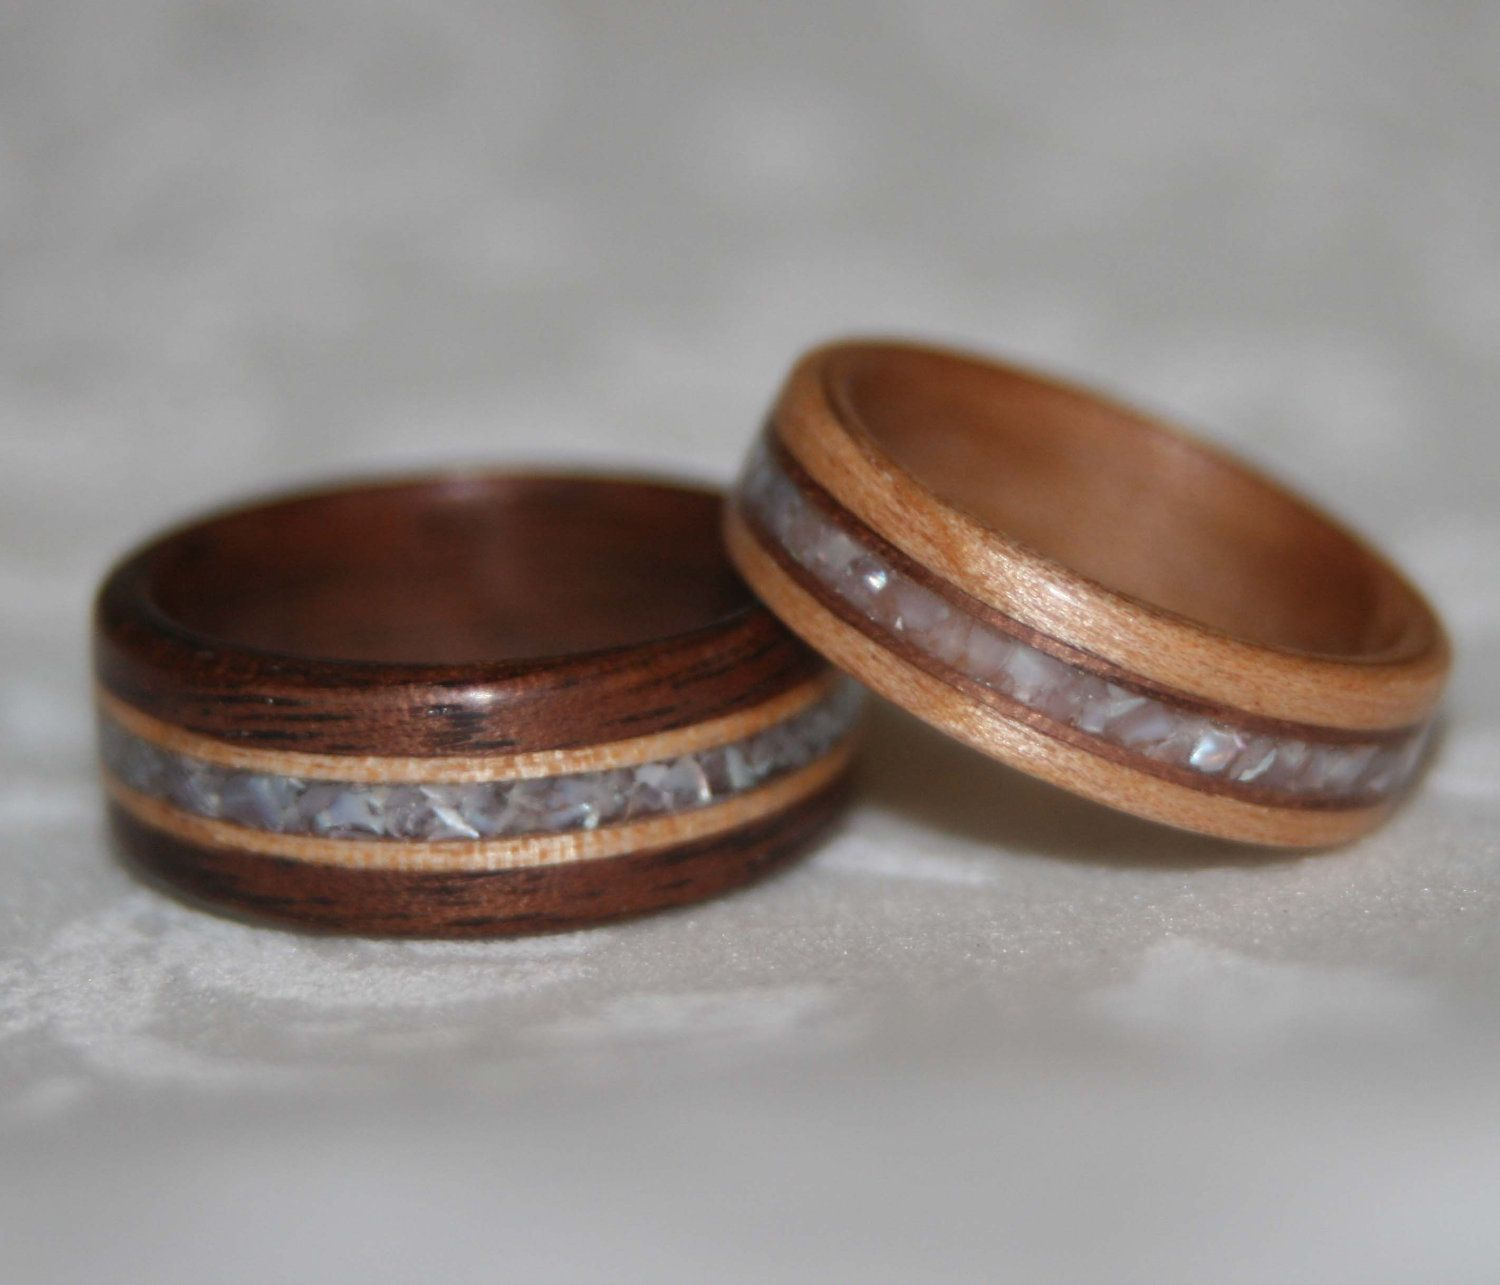 Wood Wedding Rings Using the Custom Woods and Stone of Your Choice